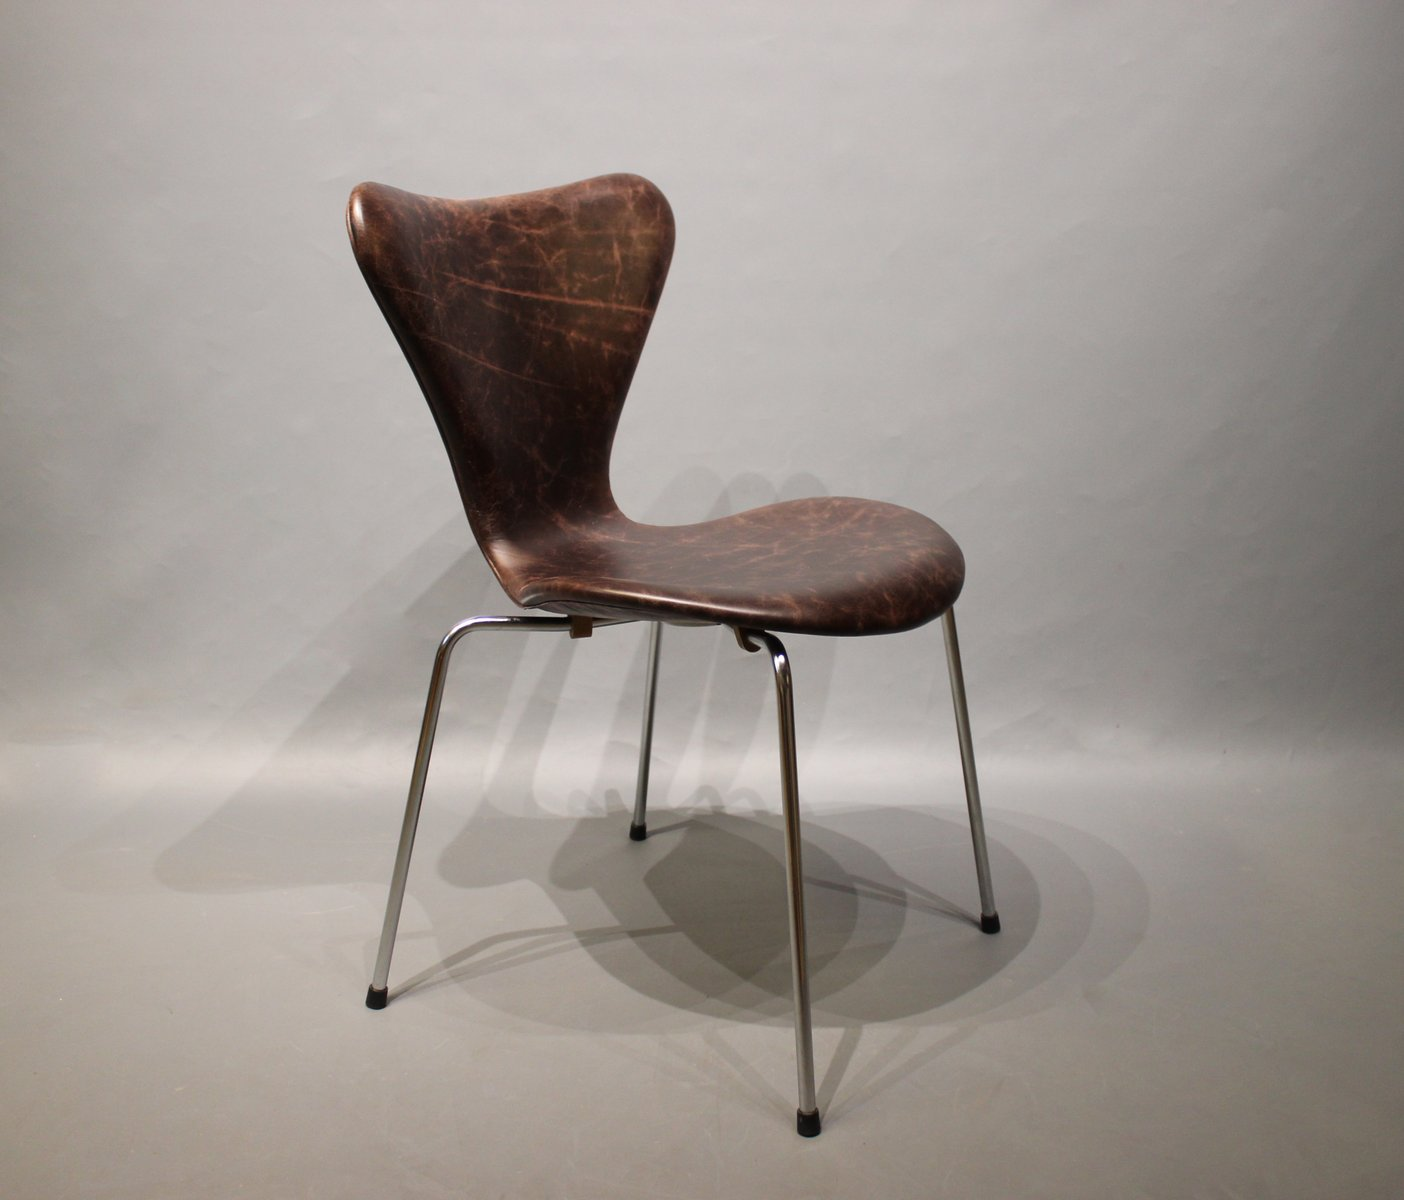 Stuhl Arne Jacobsen model 3107 chair by arne jacobsen from fritz hansen 1967 for sale